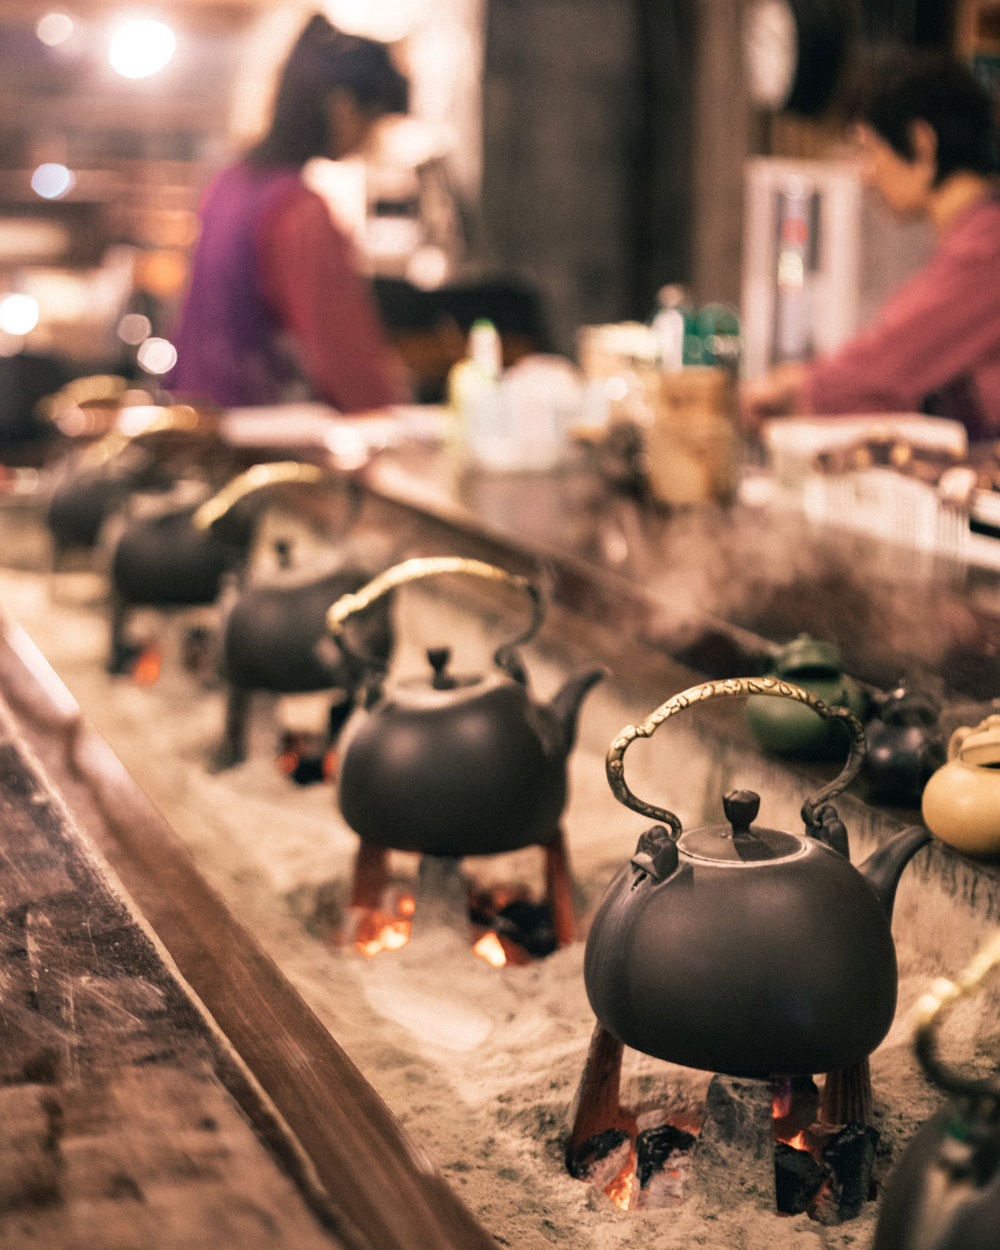 Jiufen Tea House - The kettles on the boil